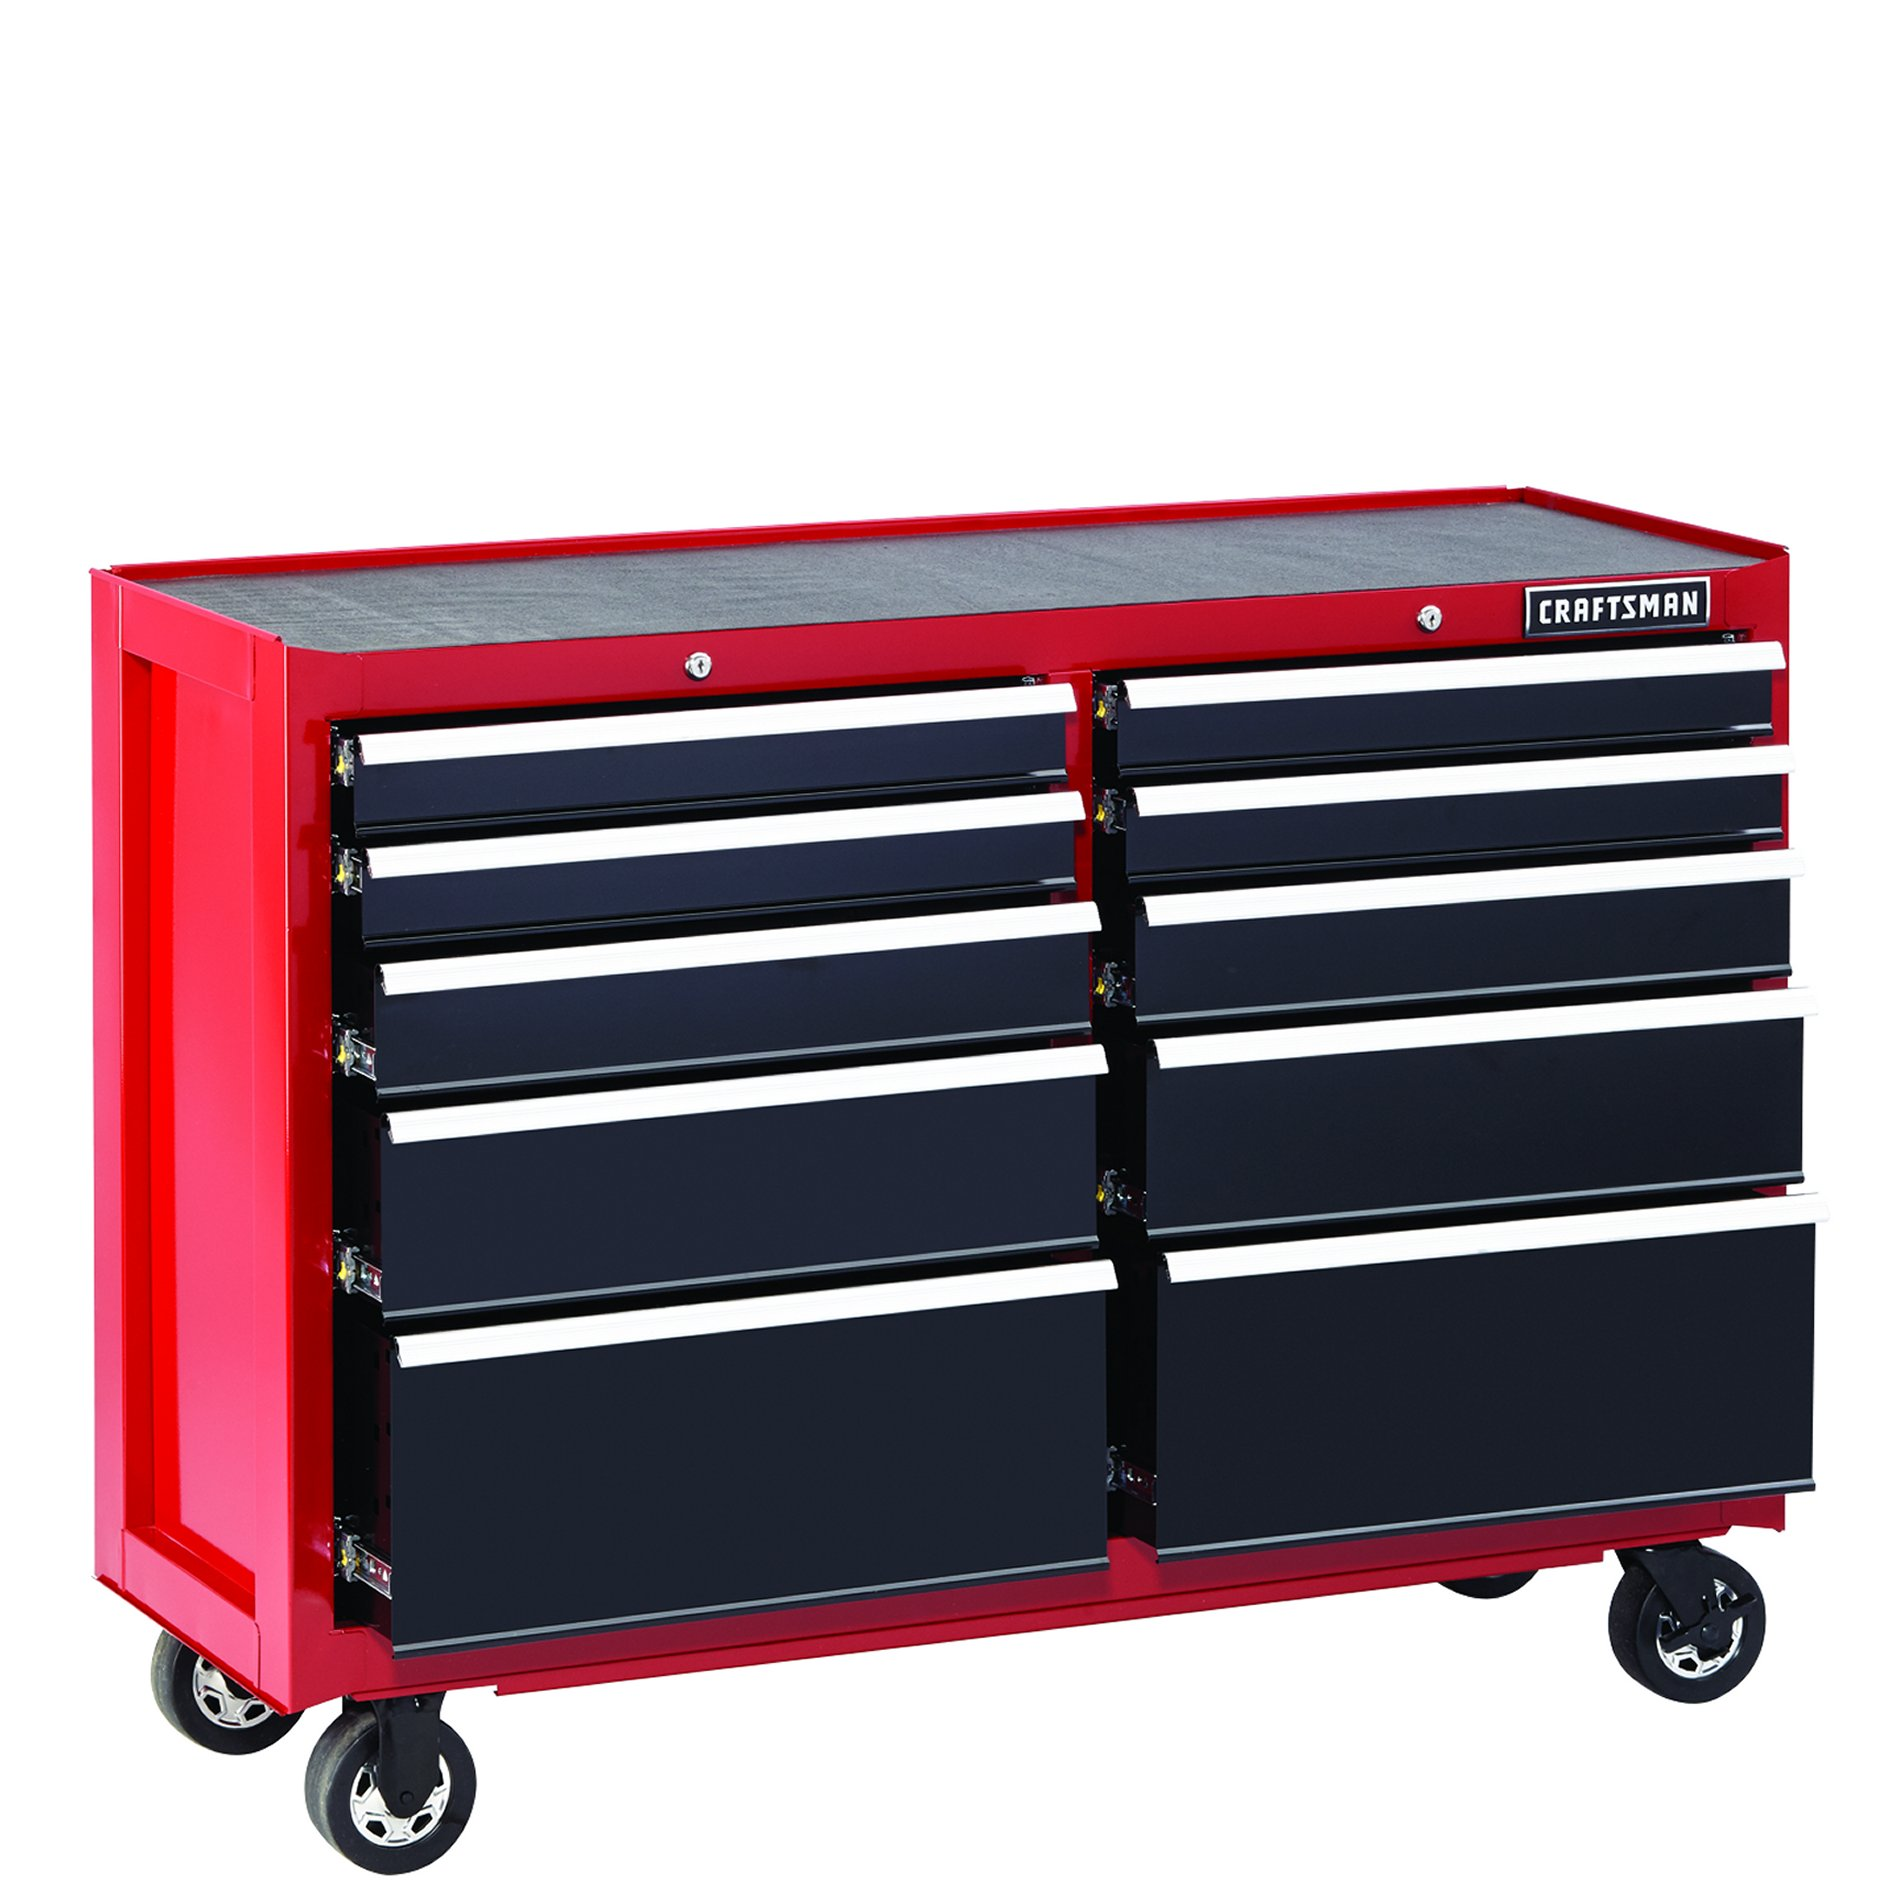 "Craftsman 52"""" 10-Drawer Heavy-Duty Rolling Cart - Red"